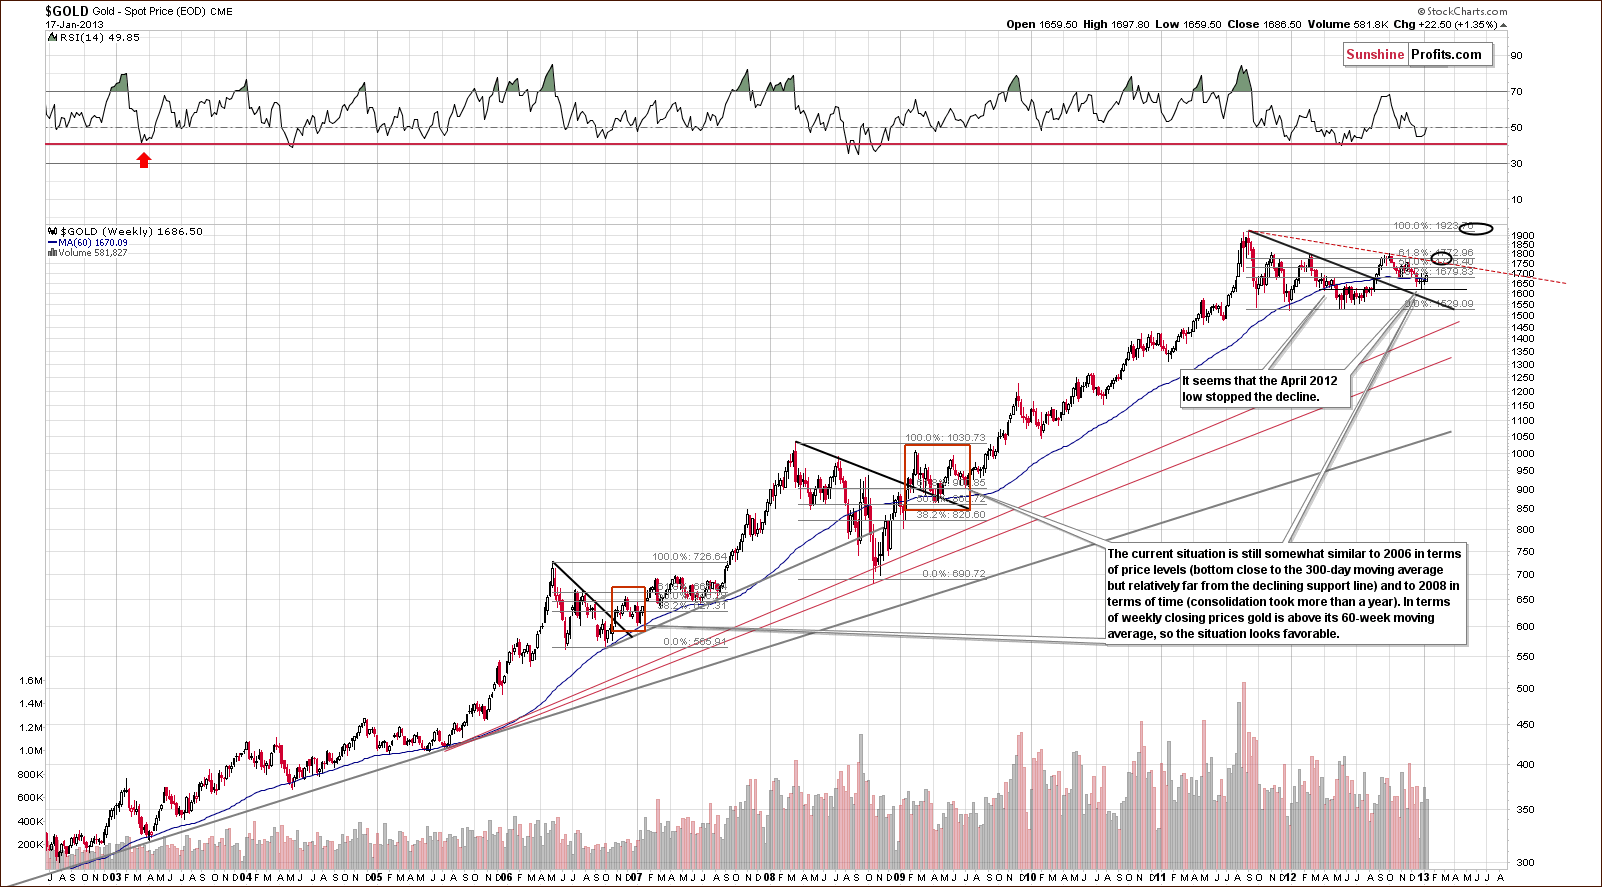 Very long-term Gold price chart